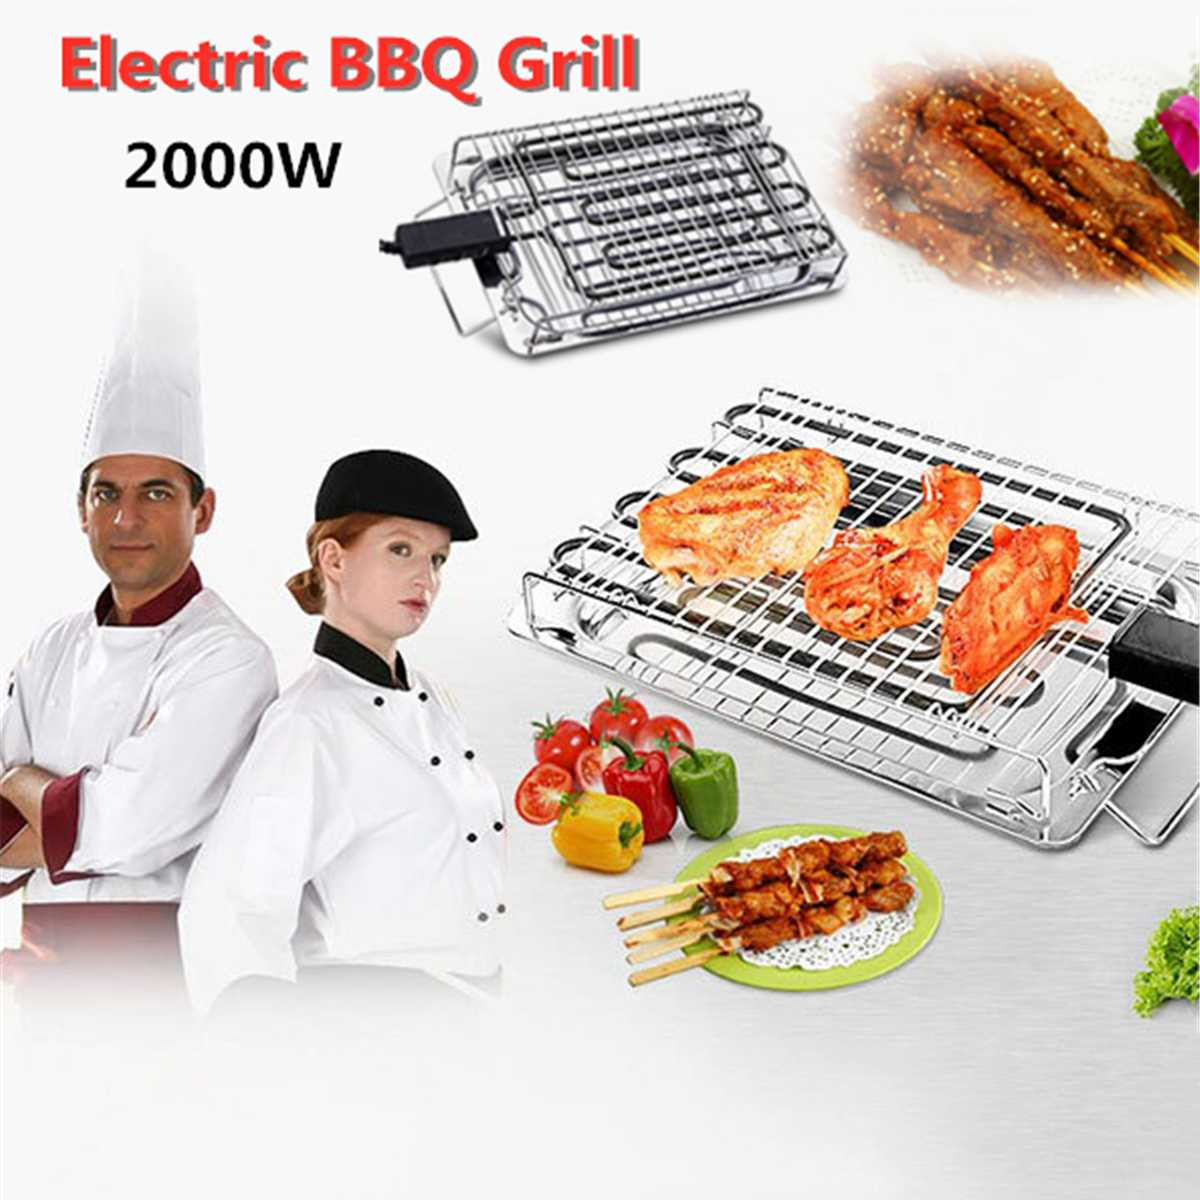 220V 2000W Electric BBQ Grills for 4 6 People Charcoal Grill Stainless Steel BBQ Grills Portable